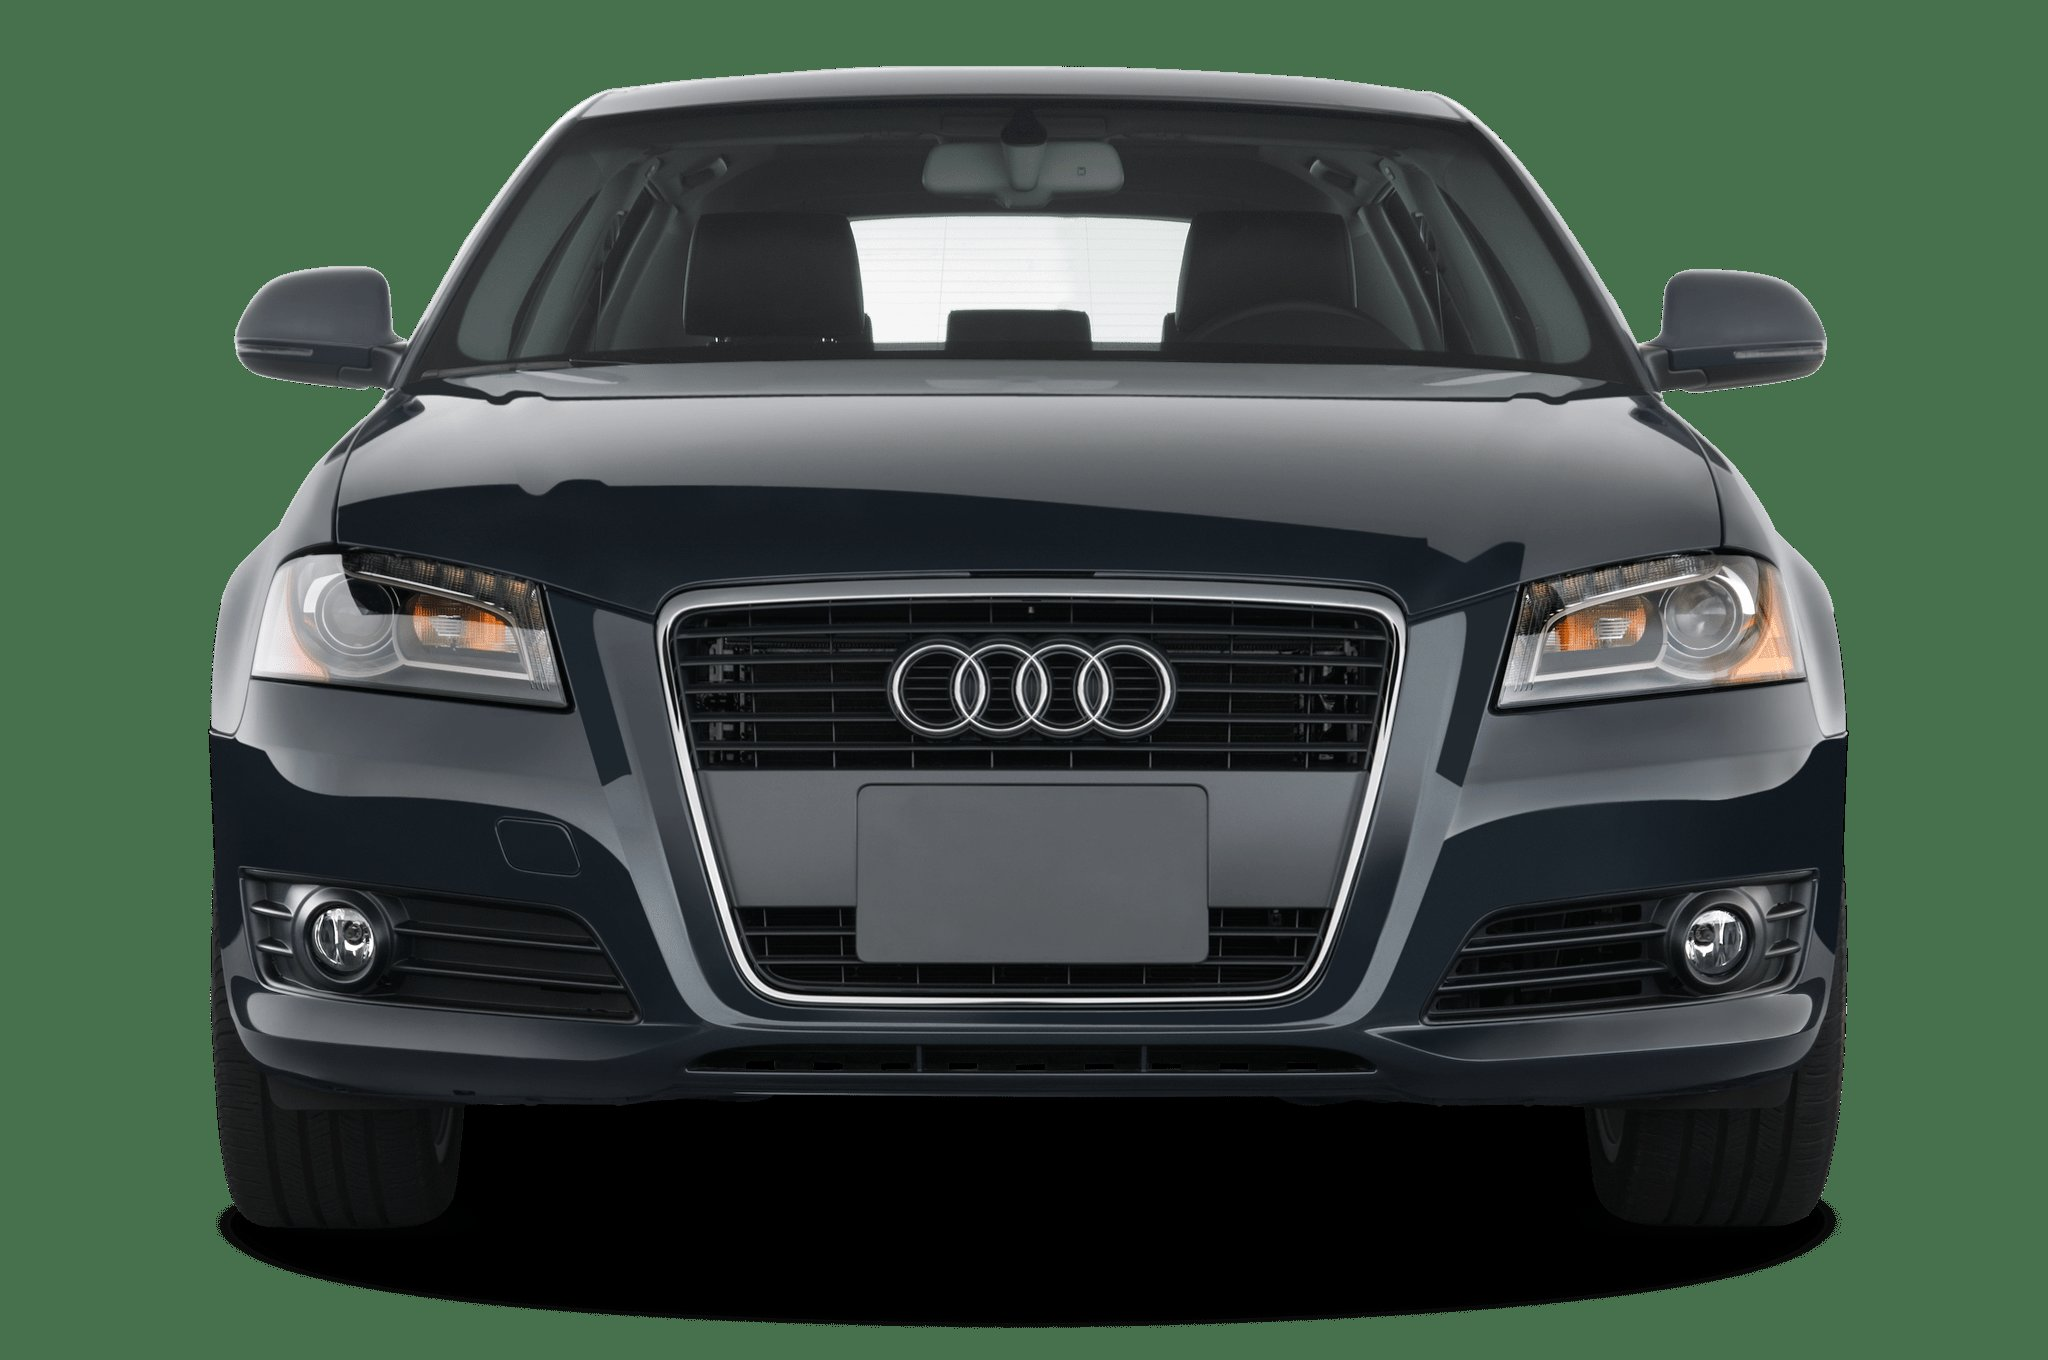 Latest 2010 Audi A3 Tdi Audi Diesel Luxury Wagon Review Free Download